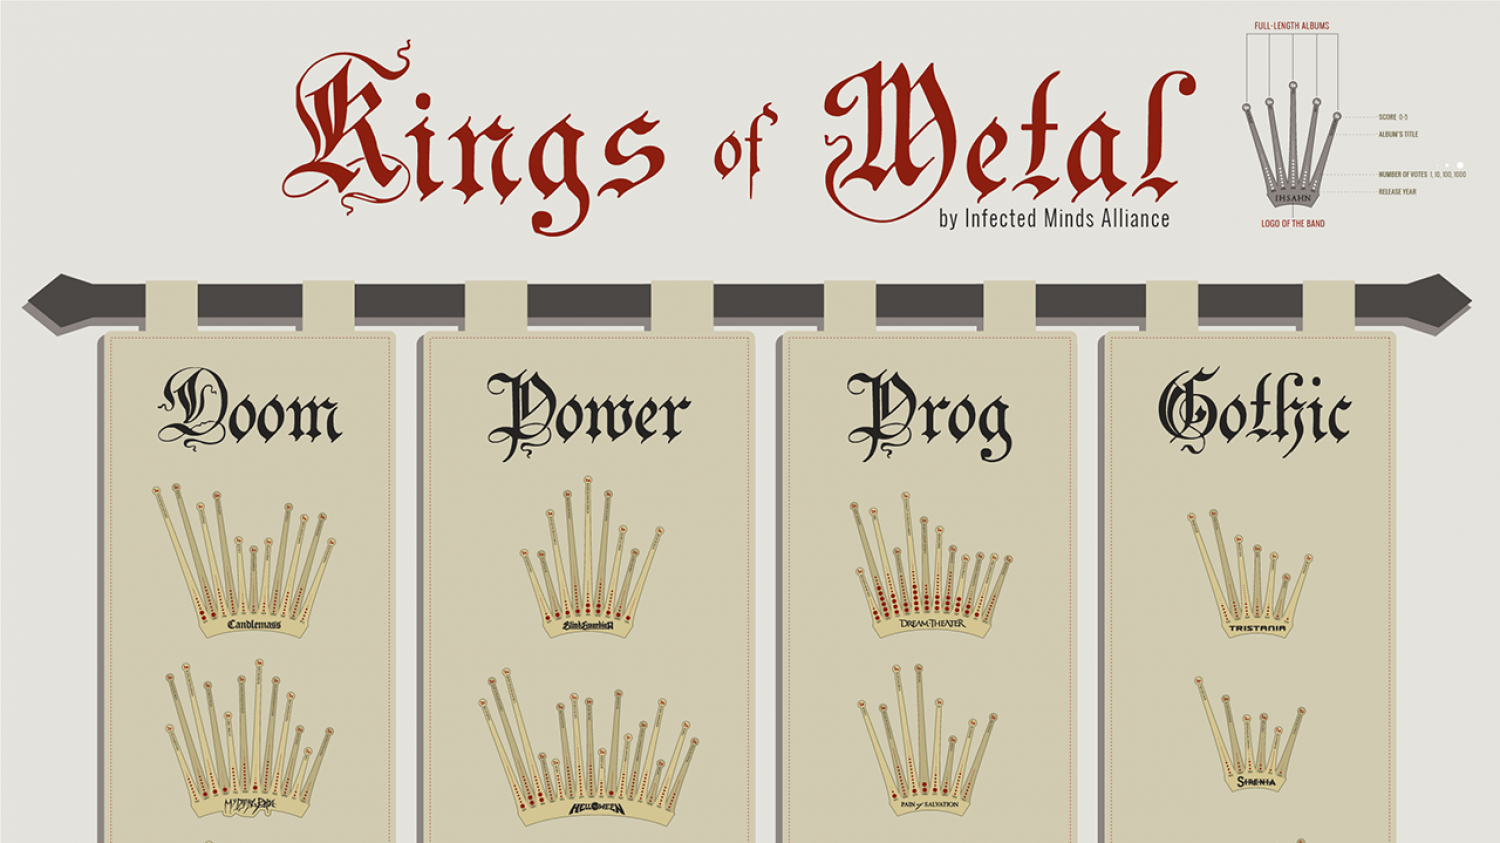 Kings of Metal 2 Infographic